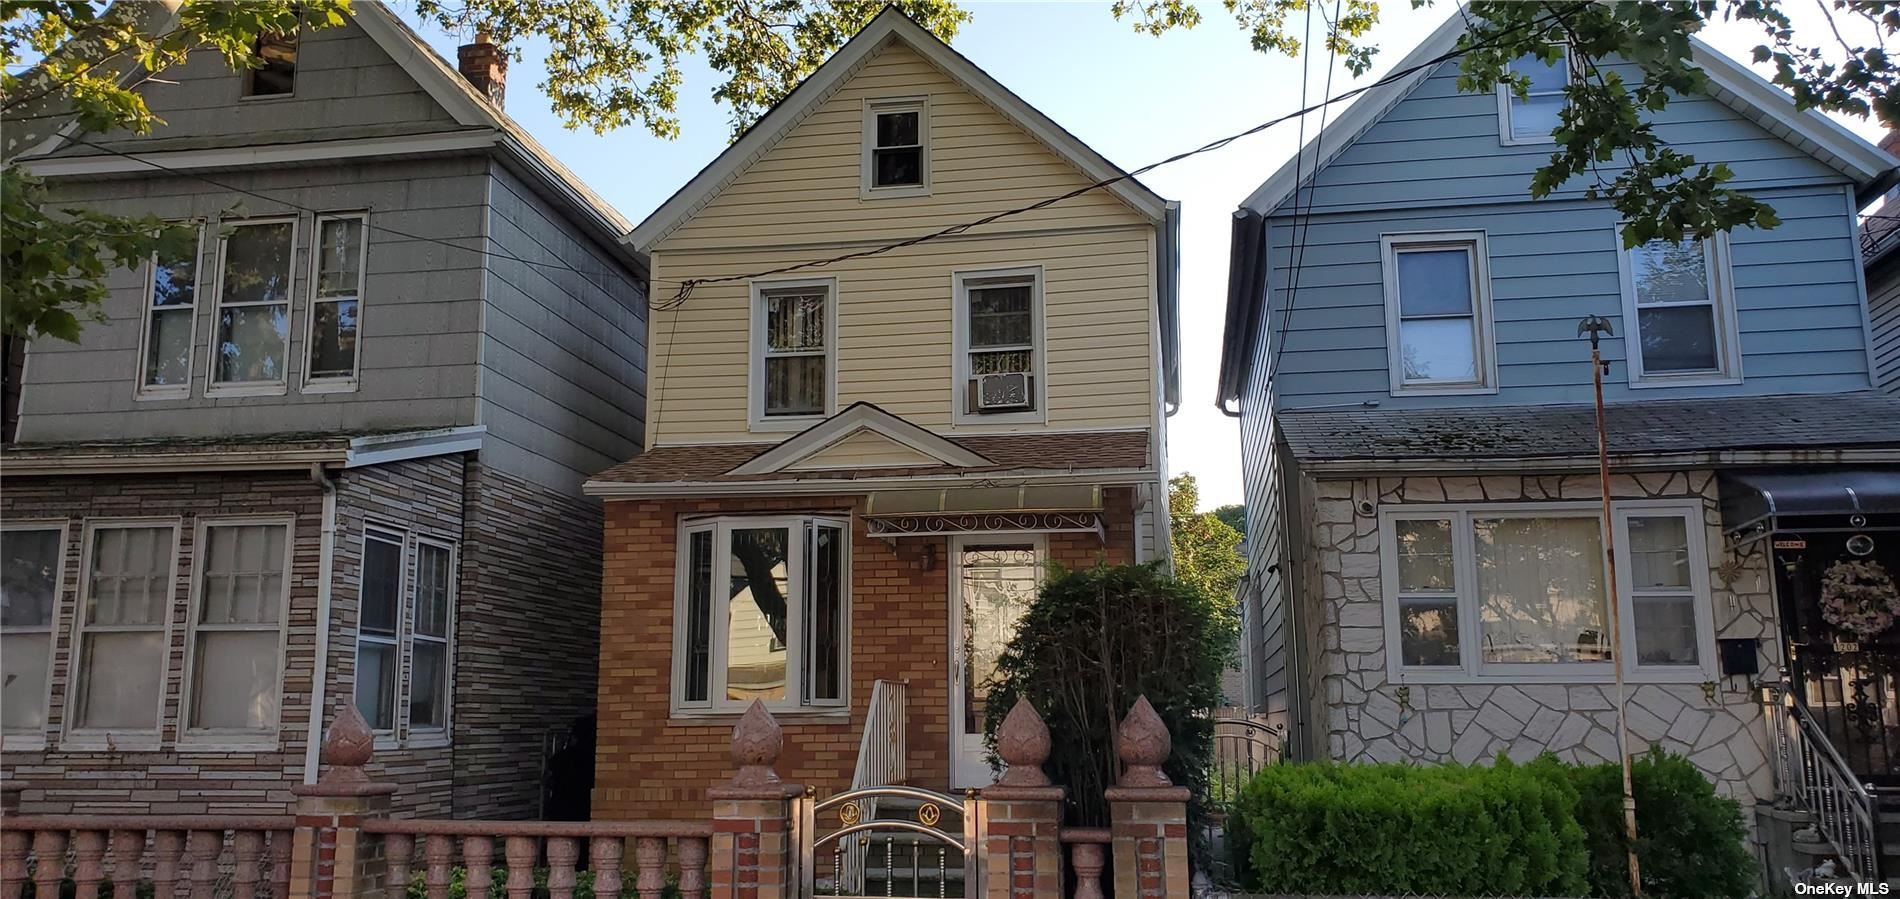 1204 E 94th Street, Canarsie, New York11236   Residential For Sale